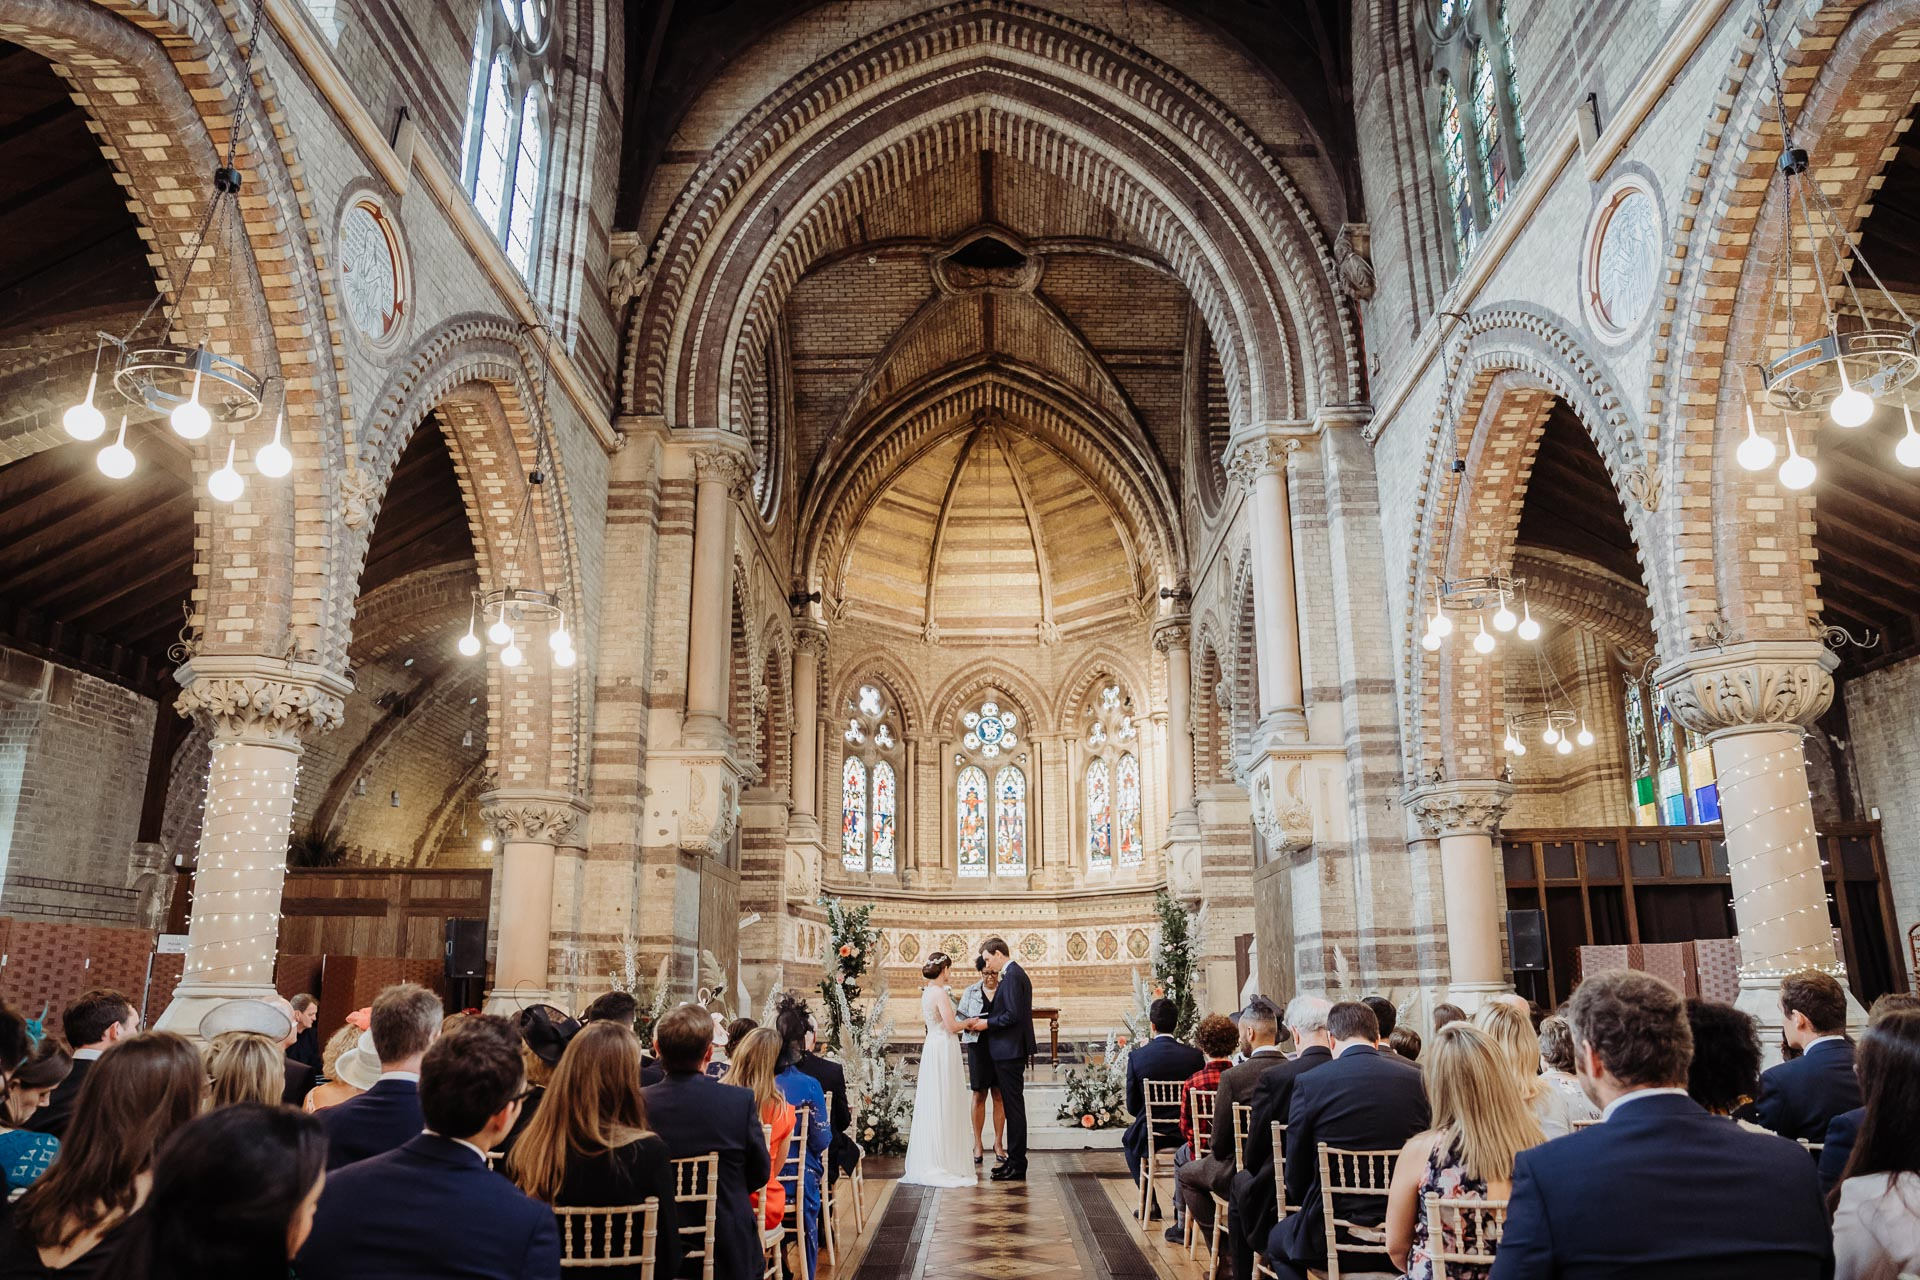 st-stephens-hampstead-wedding-photographer-001-9